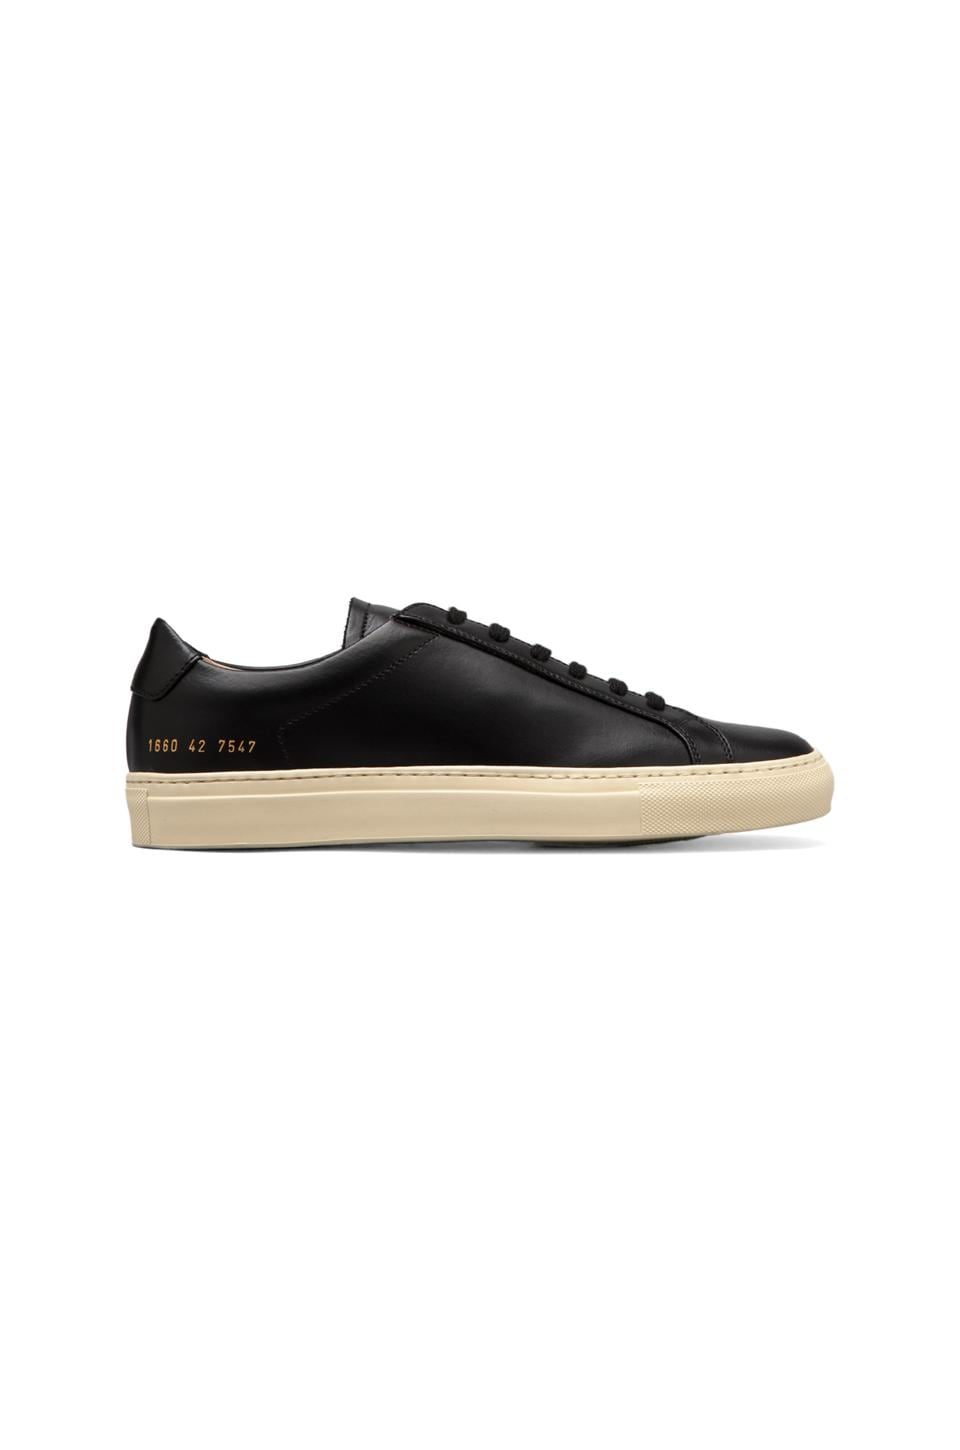 Common Projects Original Vintage Low in Black